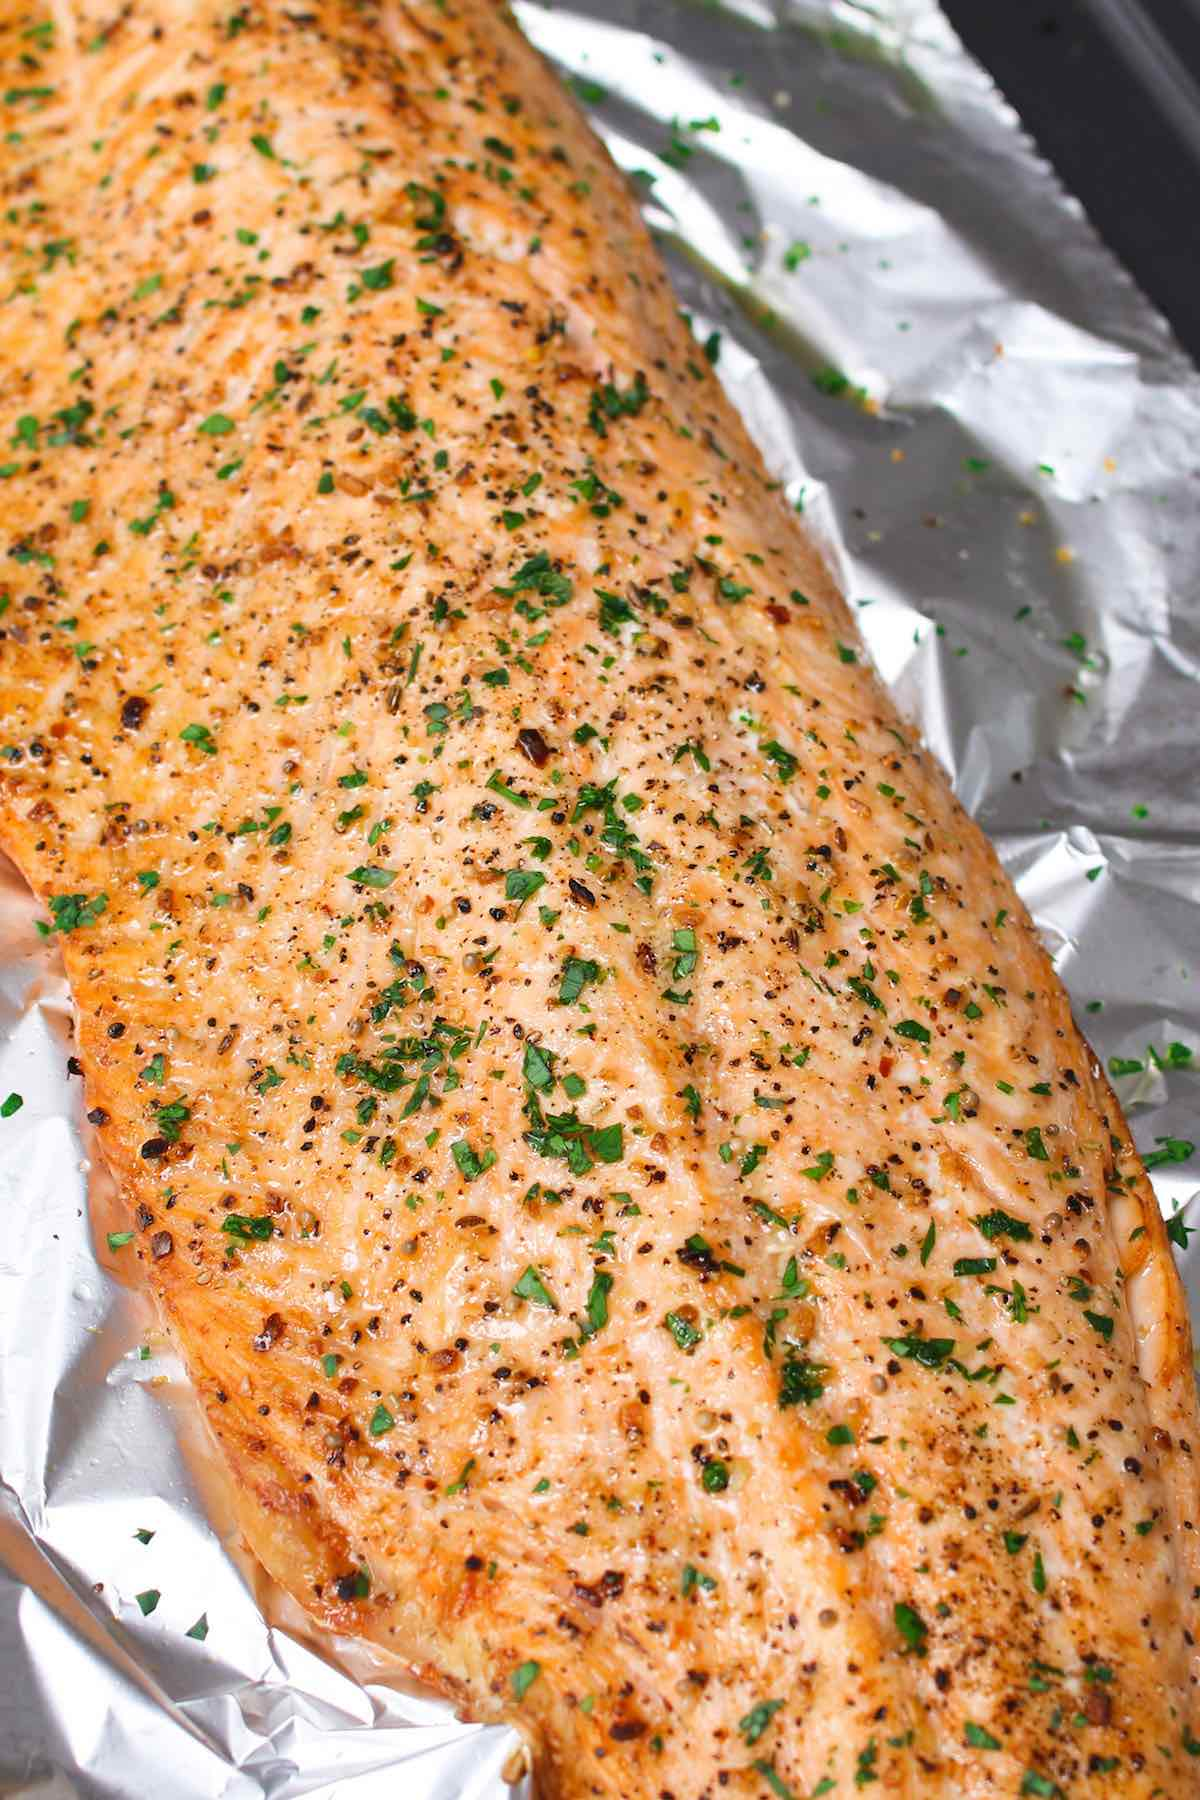 Baked Salmon fresh out of the oven with a crisp exterior and fresh herbs on top